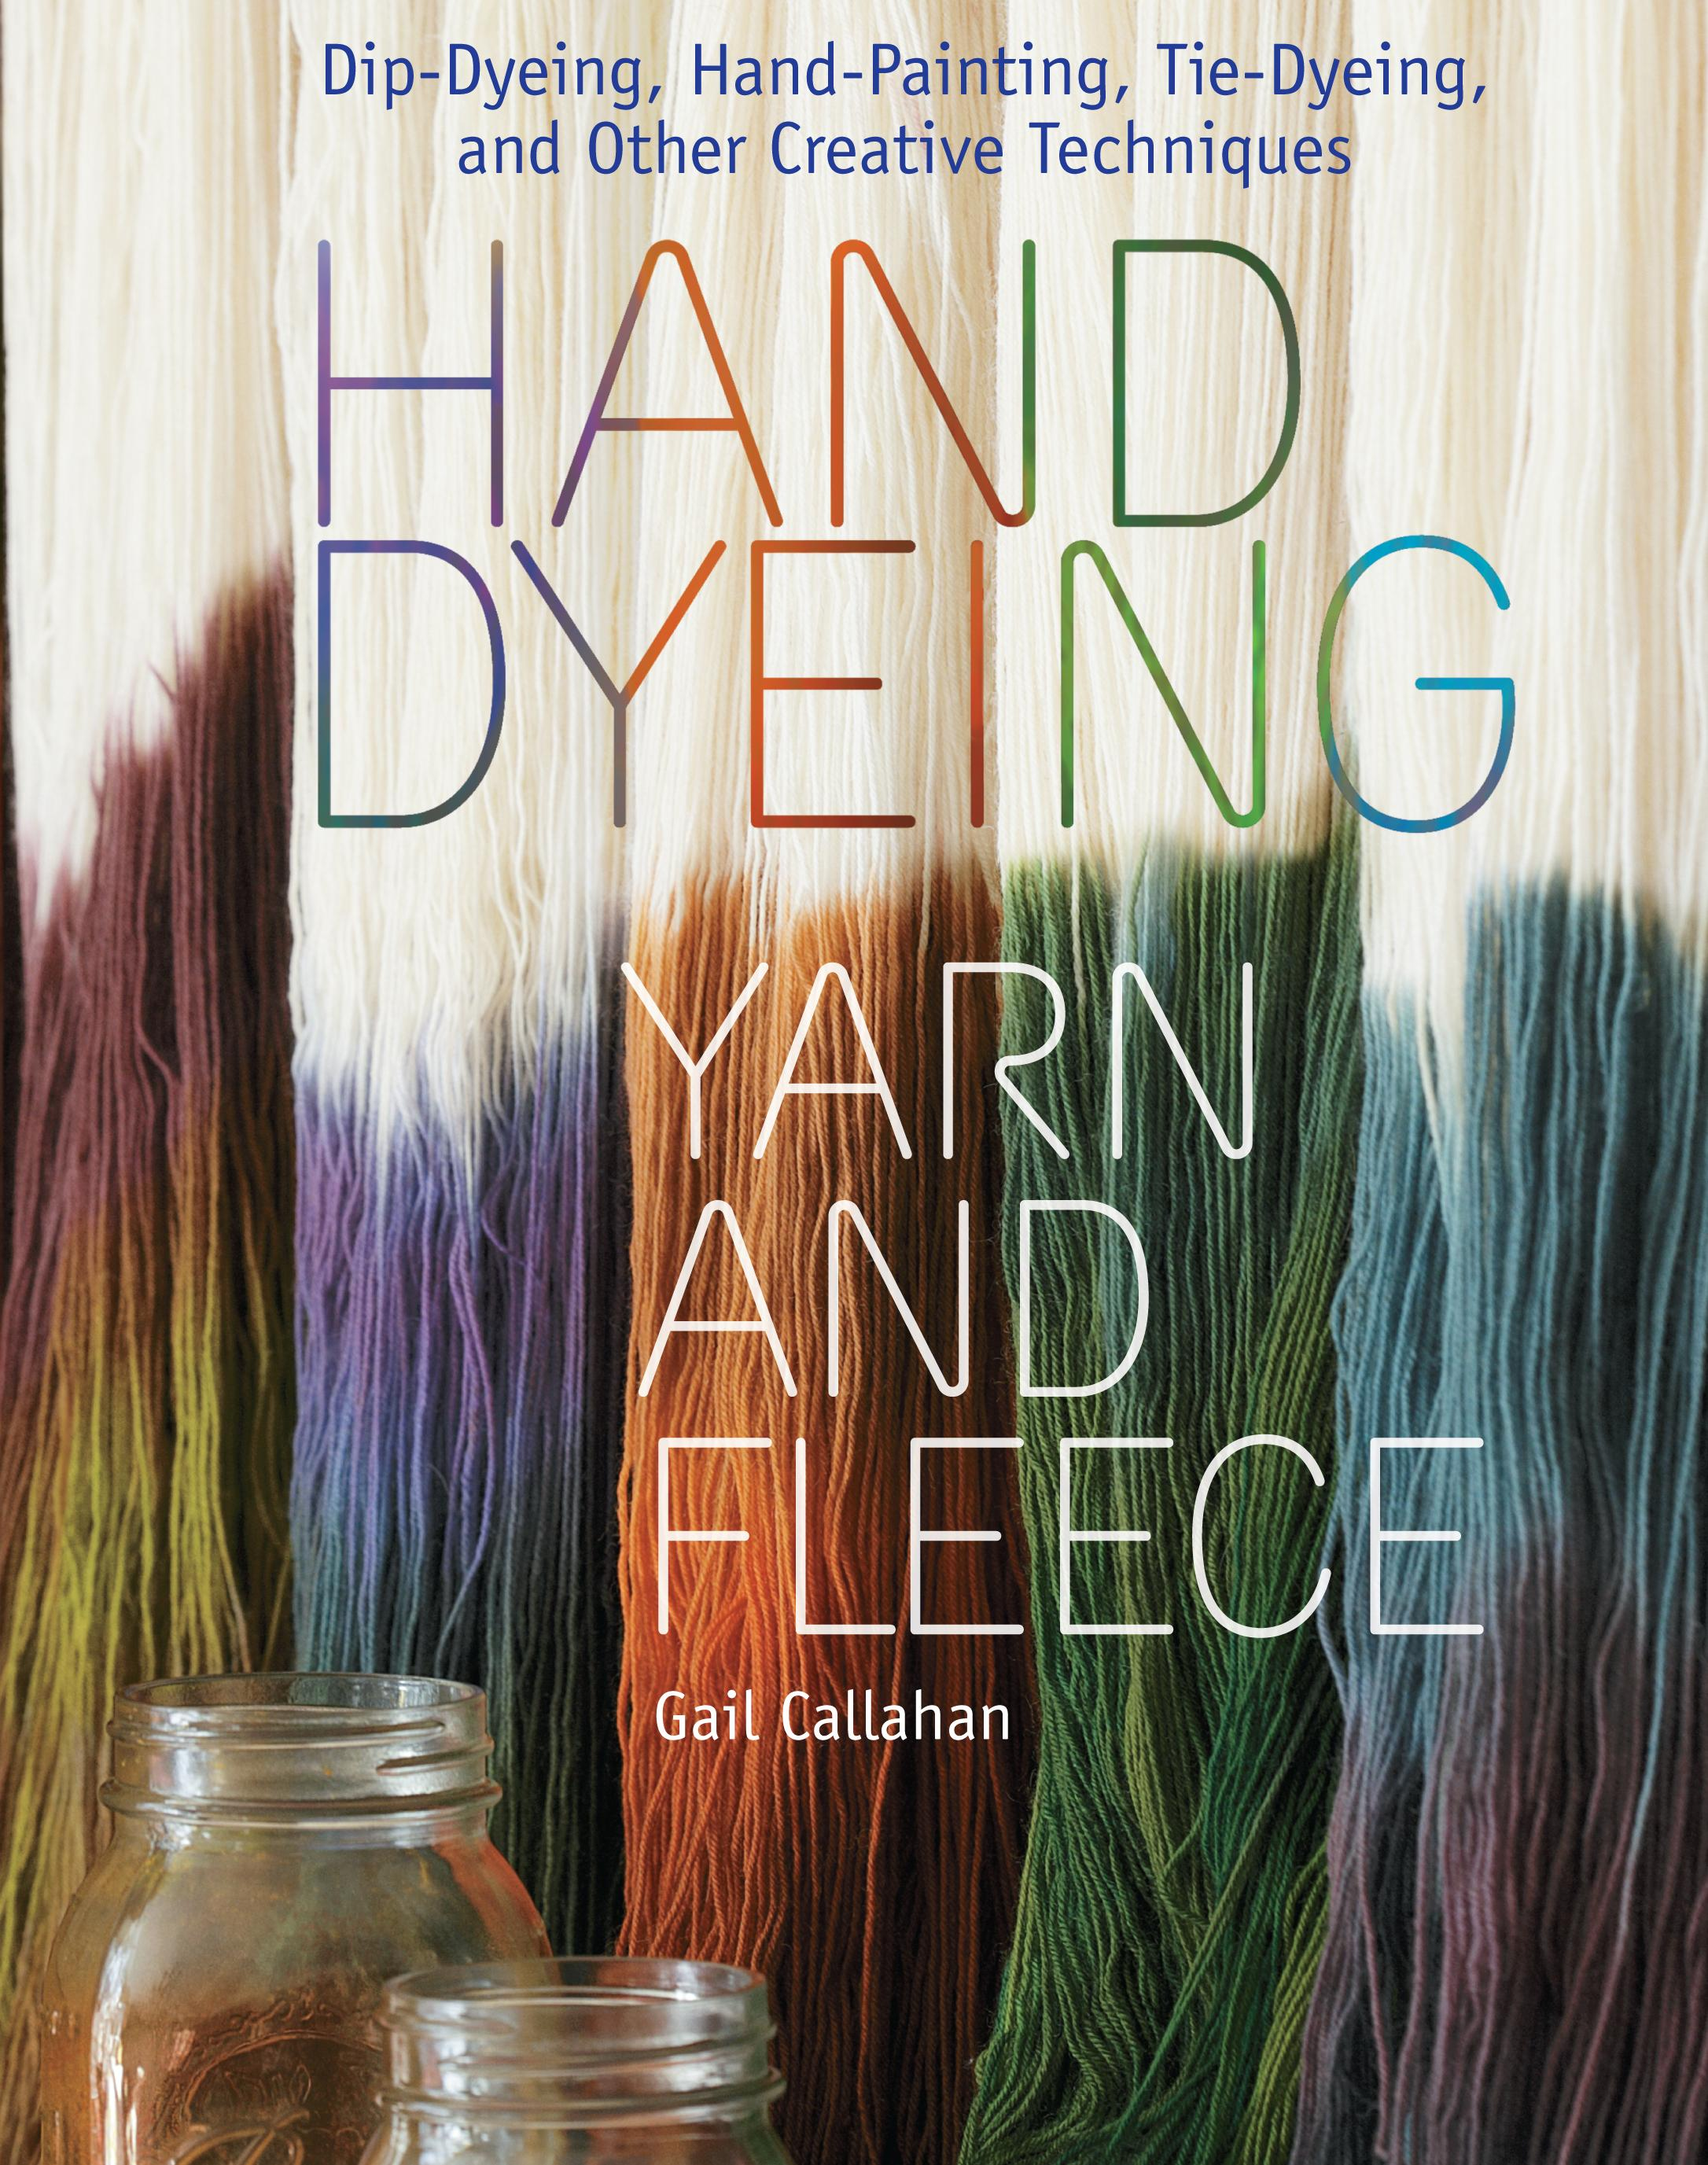 Hand Dyeing Yarn and Fleece: Custom-Color Your Favorite Fibers with Dip-Dyeing, Hand-Painting, Tie-Dyeing, and Other Creative Techniques EB9781603426718